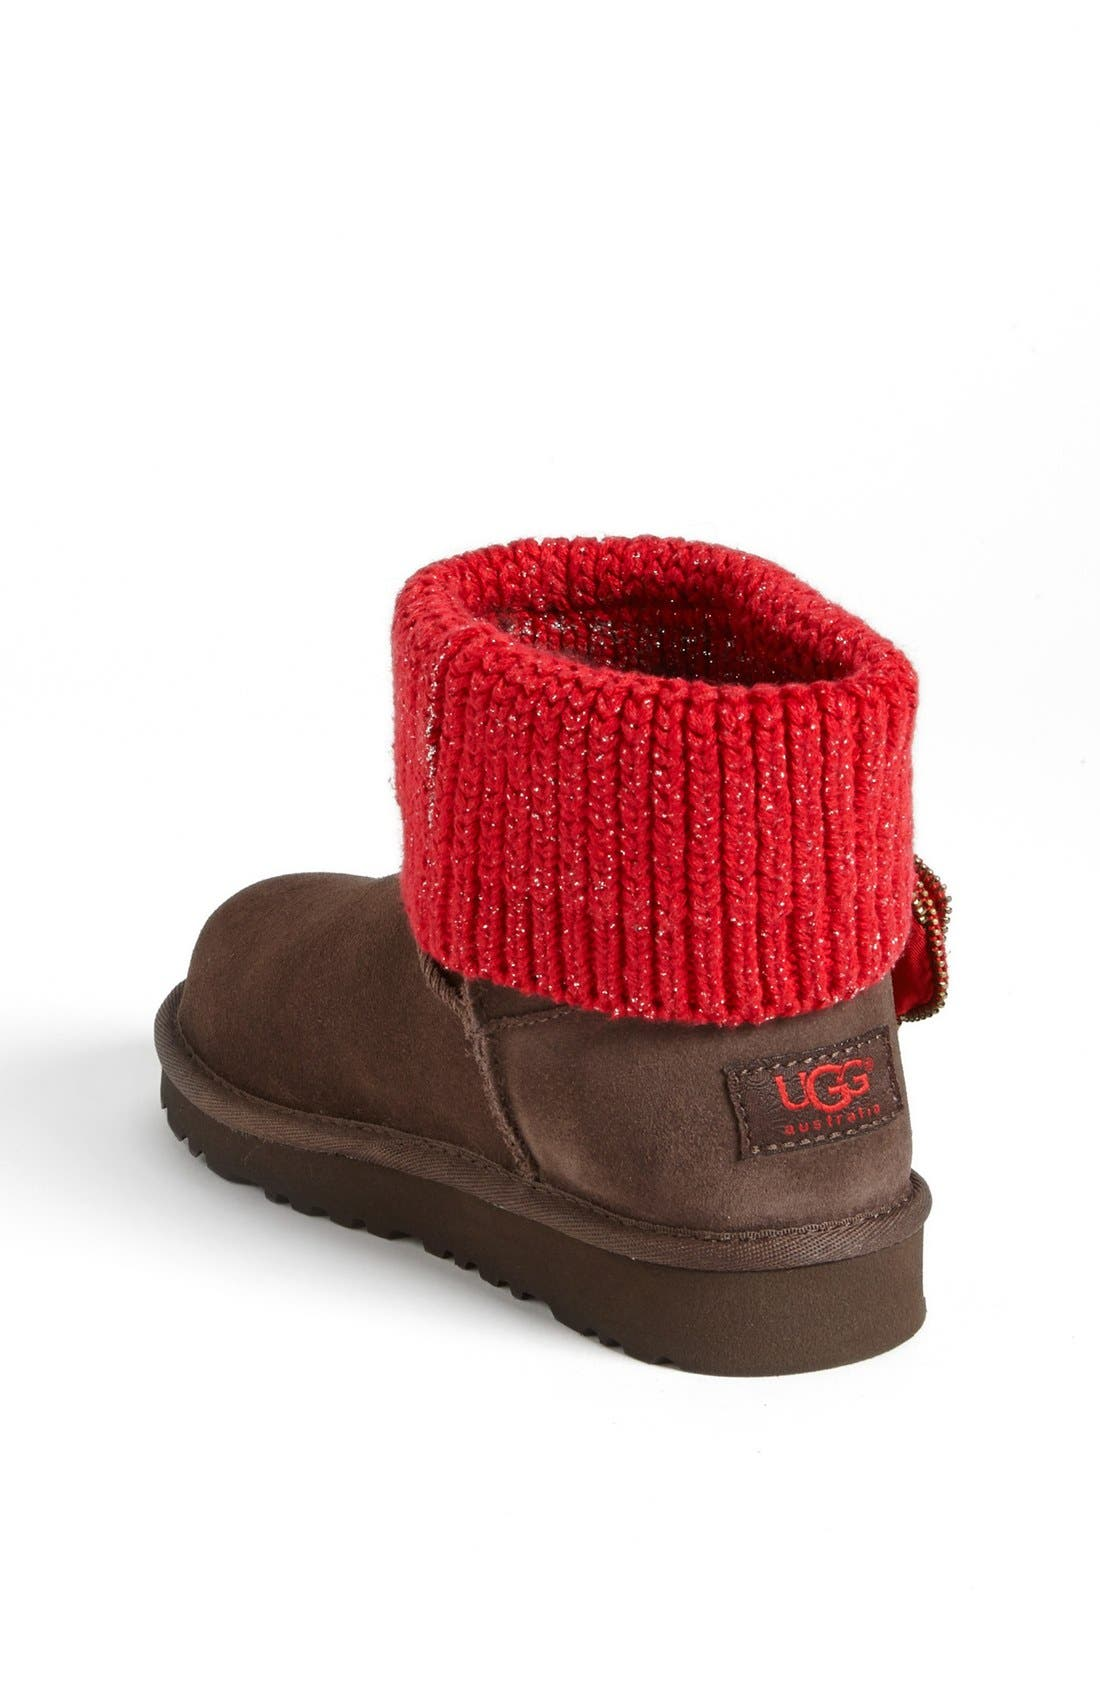 Alternate Image 2  - UGG® Australia 'Southern Belle' Boot (Little Kids & Big Kids)